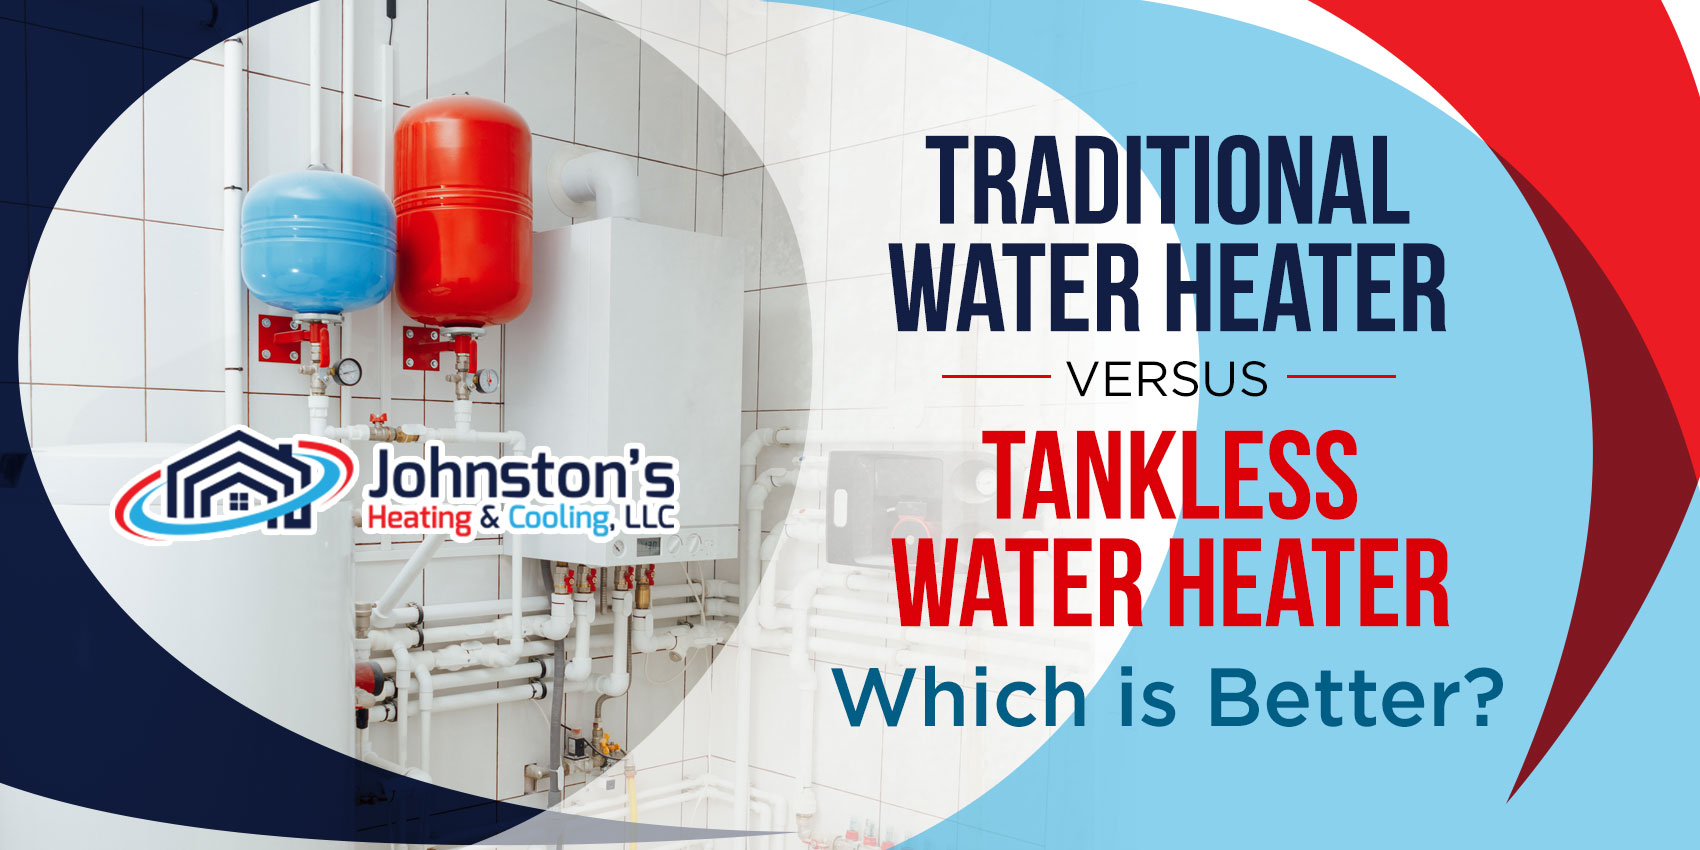 Traditional Water Heater vs. Tankless Water Heater: Which is Better?